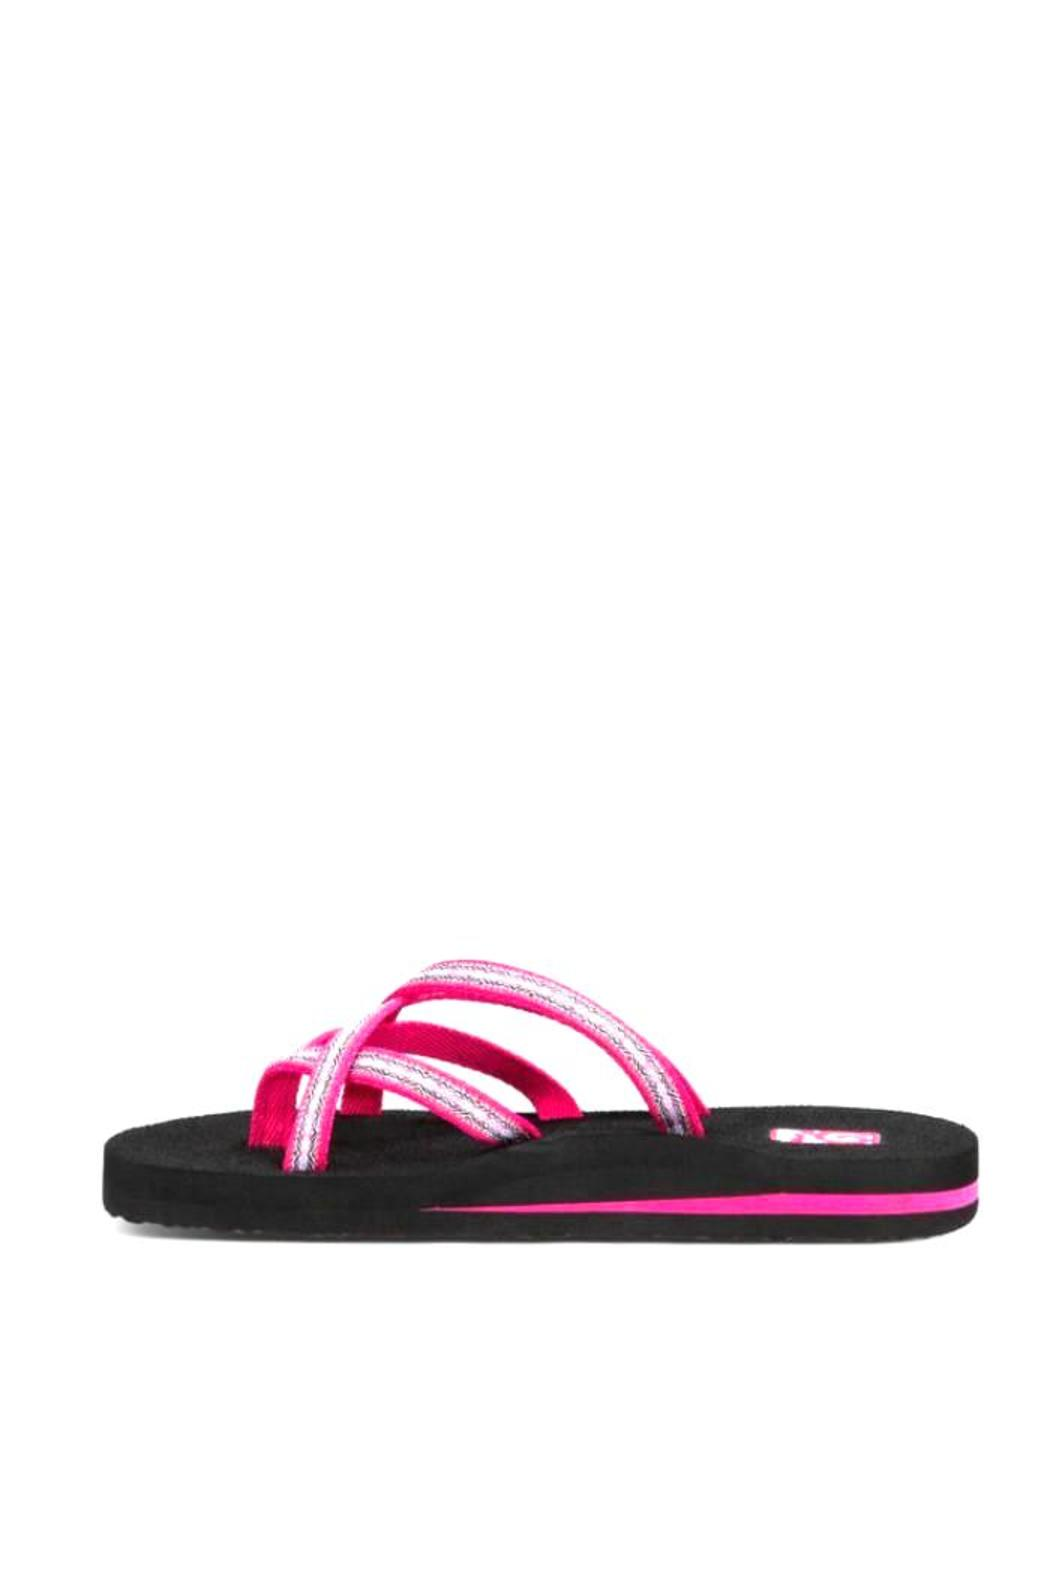 e8ea3393a Teva Olowahu Flip Flop from Tennessee by Lori s Family Footwear ...